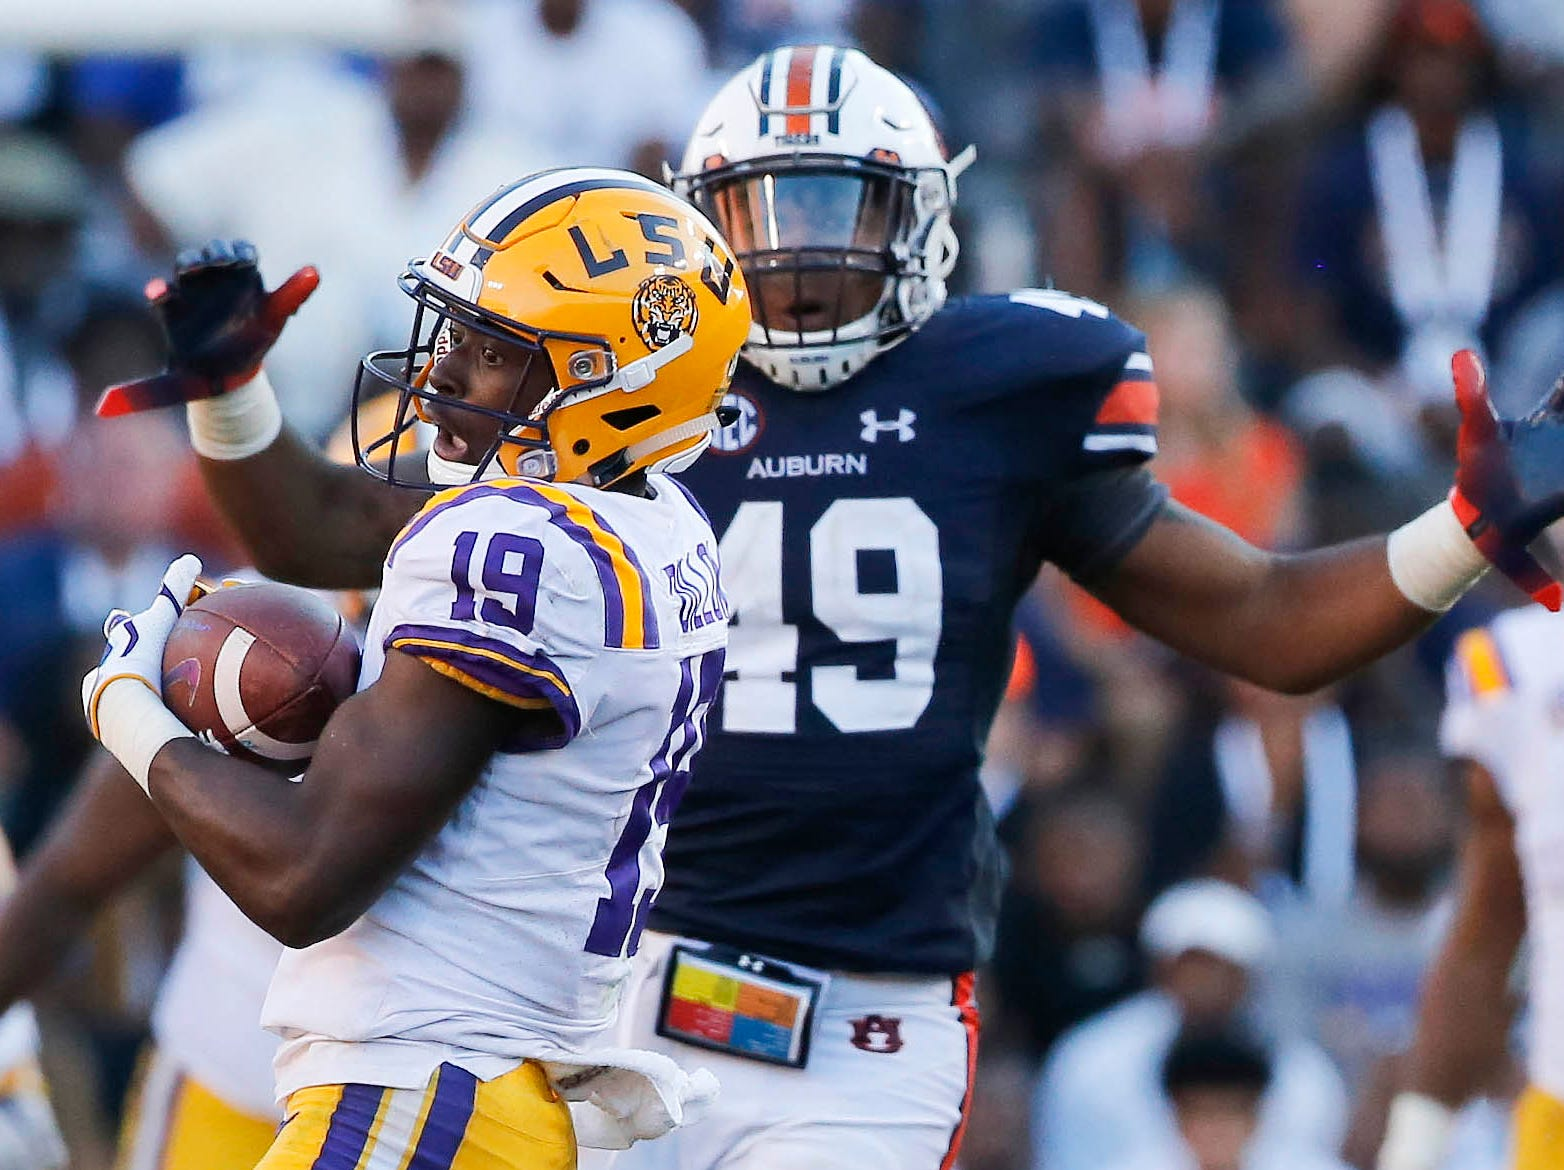 Sep 15, 2018; Auburn, AL, USA; LSU Tigers receiver Derrick Dillon (19) catches a pass over Auburn Tigers linebacker Darrell Williams (49) during the fourth quarter at Jordan-Hare Stadium. Mandatory Credit: John Reed-USA TODAY Sports